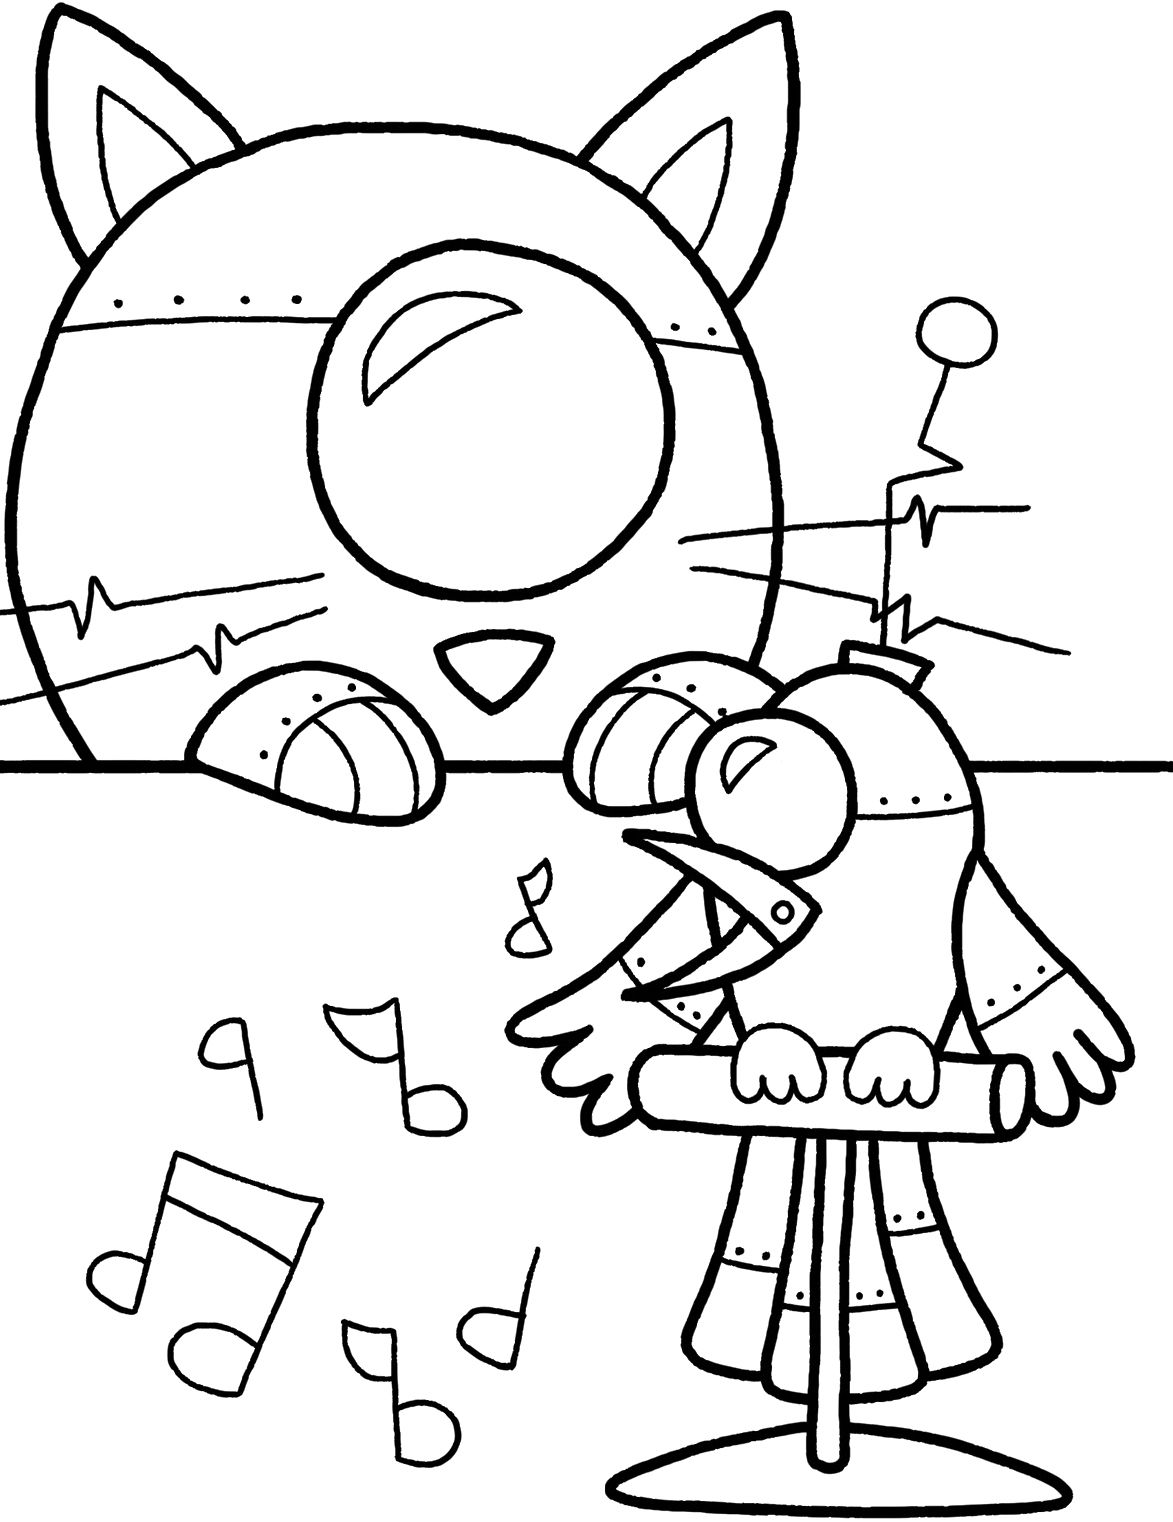 Coloring pictures robot - Bird Singing Robot Coloring Pages Coloring Pages Printables